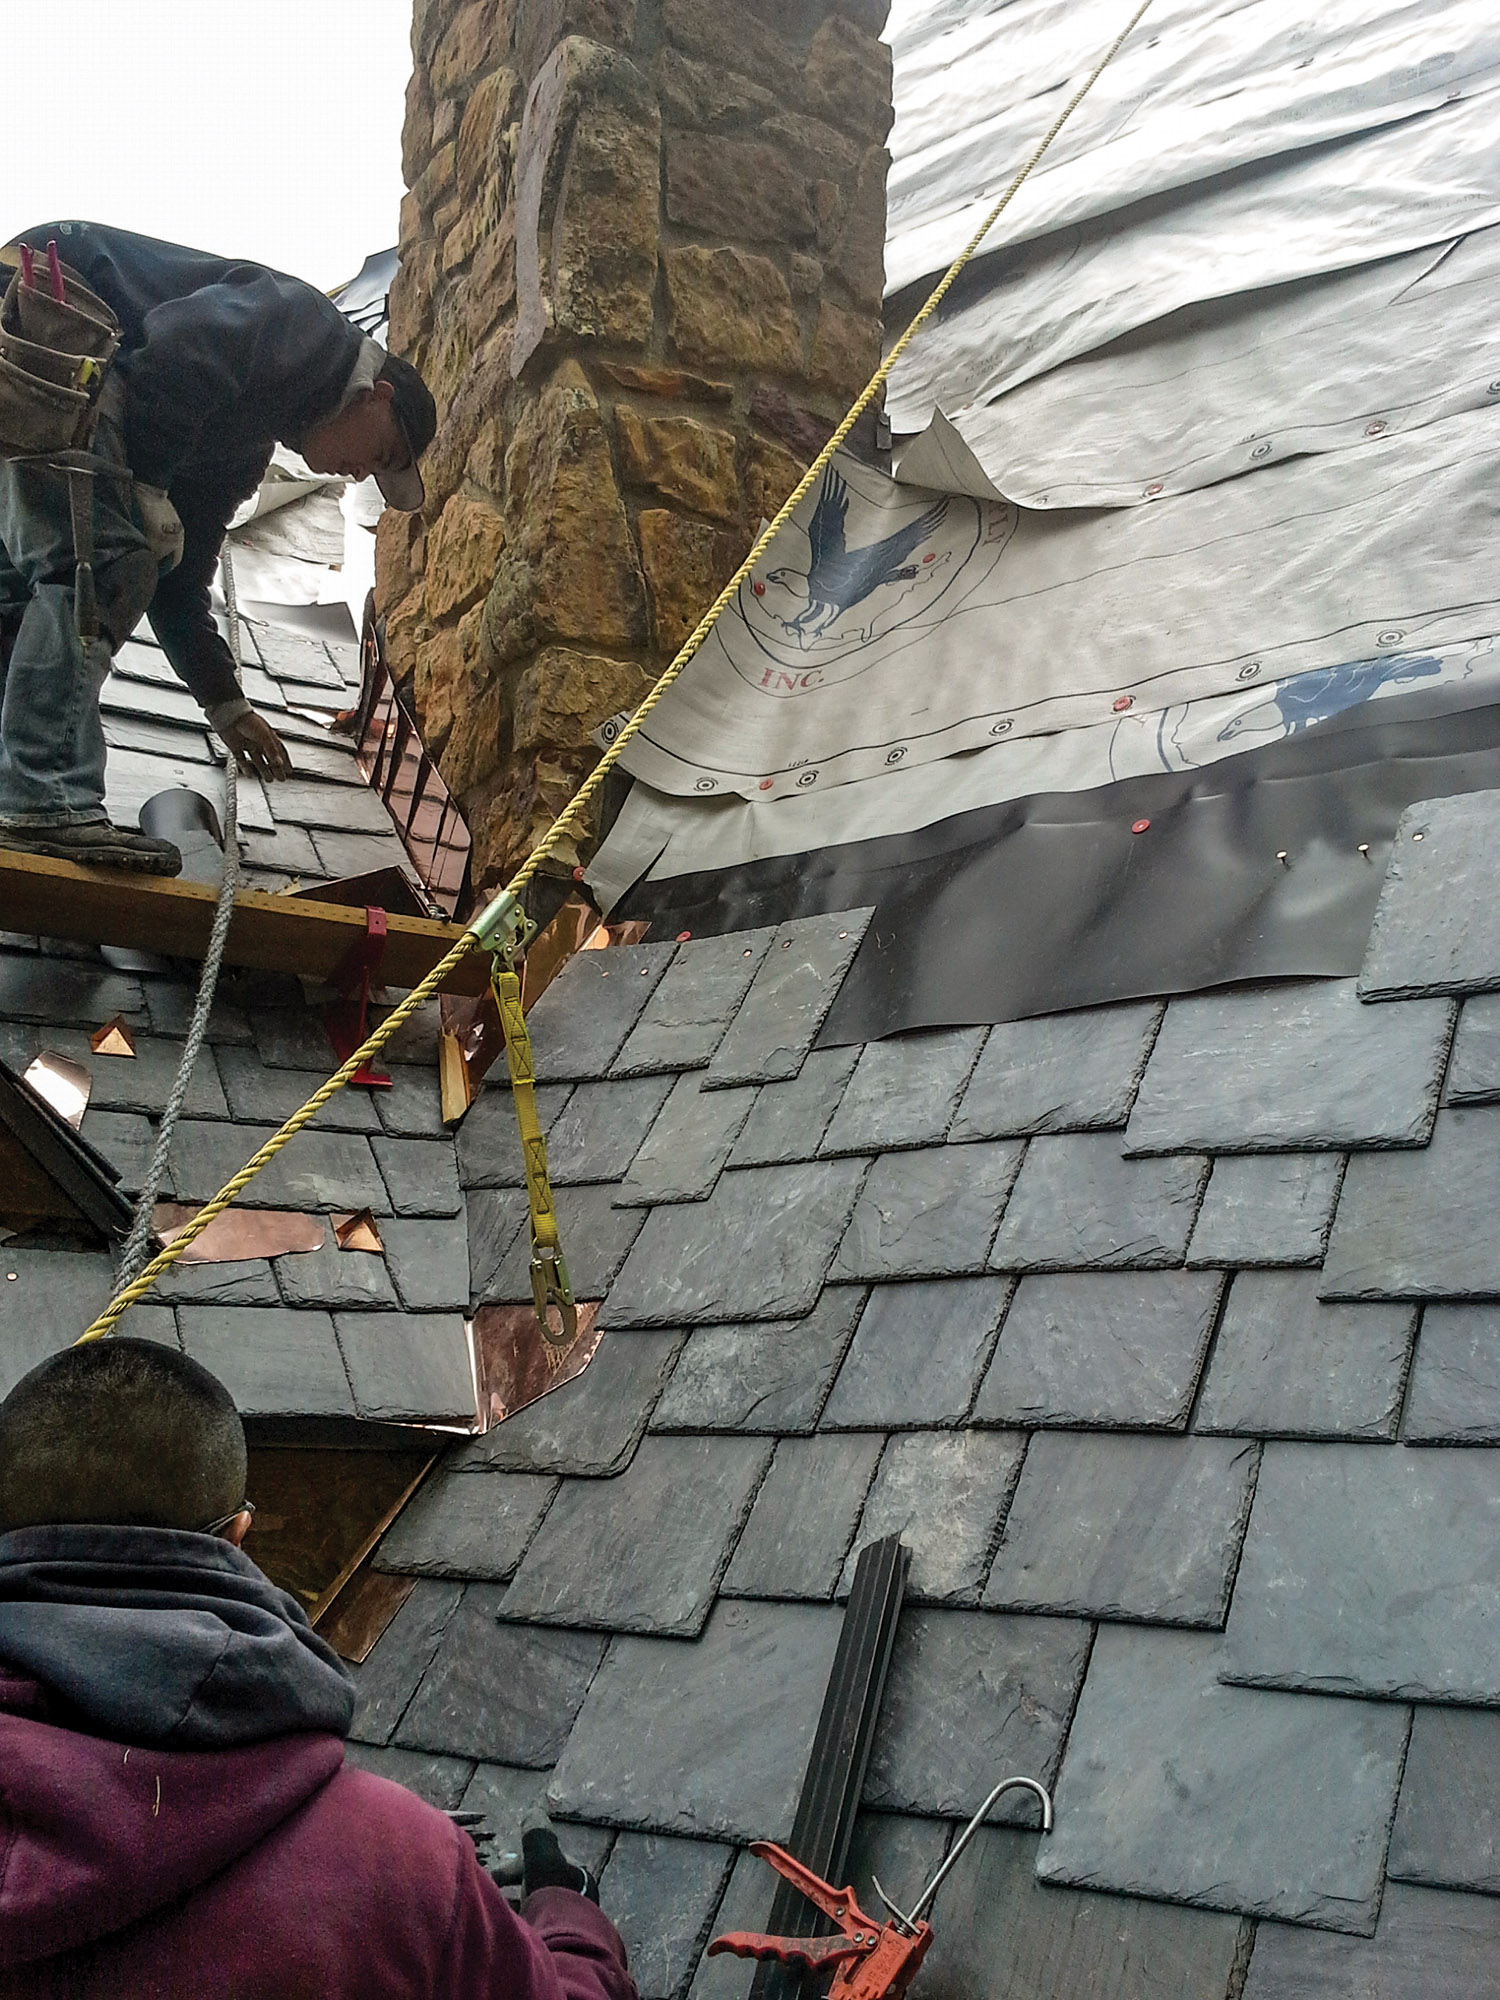 A long-lived membrane better know as landfill liner lies between courses of slates, reducing the amount of head lap required. As a result, less slate is needed to cover the roof, reducing weight and bringing significant cost savings to the owner.